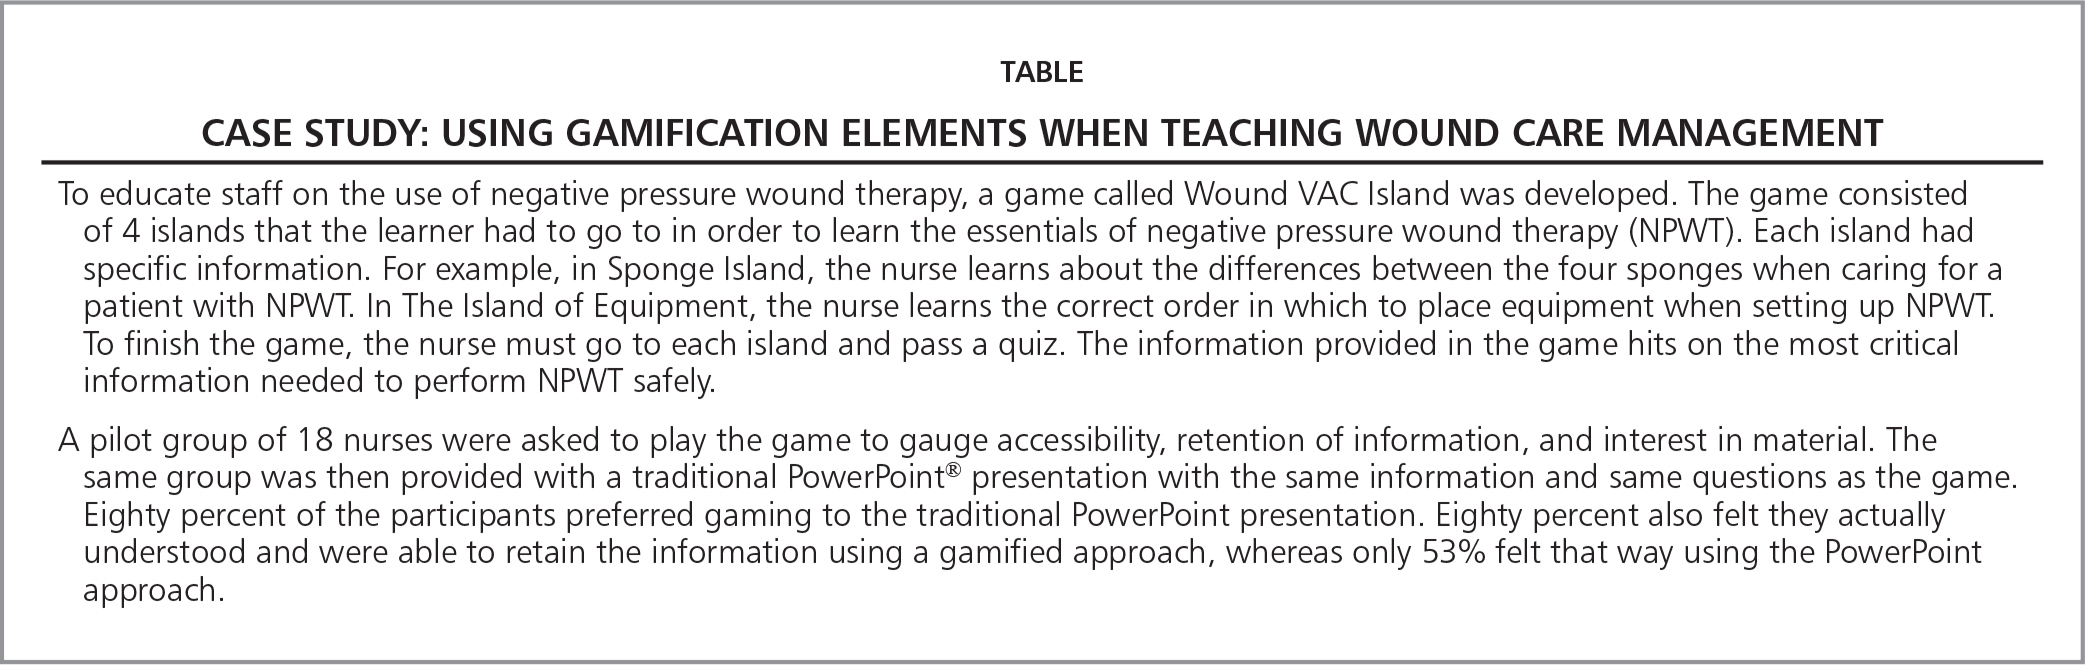 Case Study: Using Gamification Elements When Teaching Wound Care Management